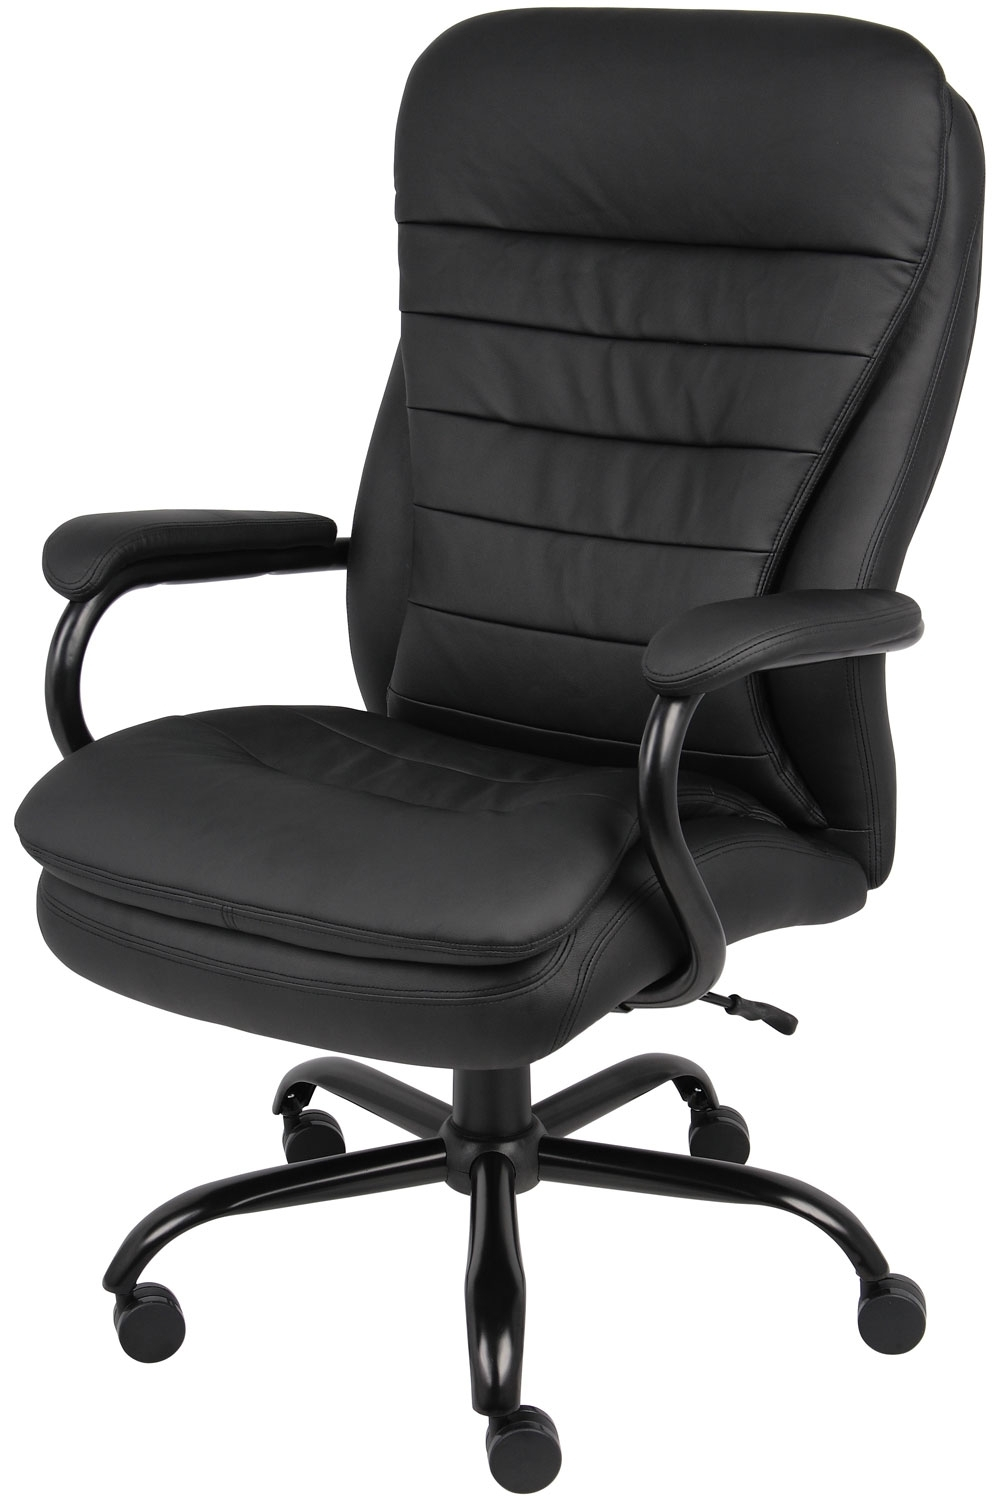 Widely Used Big And Tall Executive Office Chairs Regarding B991 Cp Big And Tall Executive Office Chair In Caresoft Vinyl (View 14 of 20)